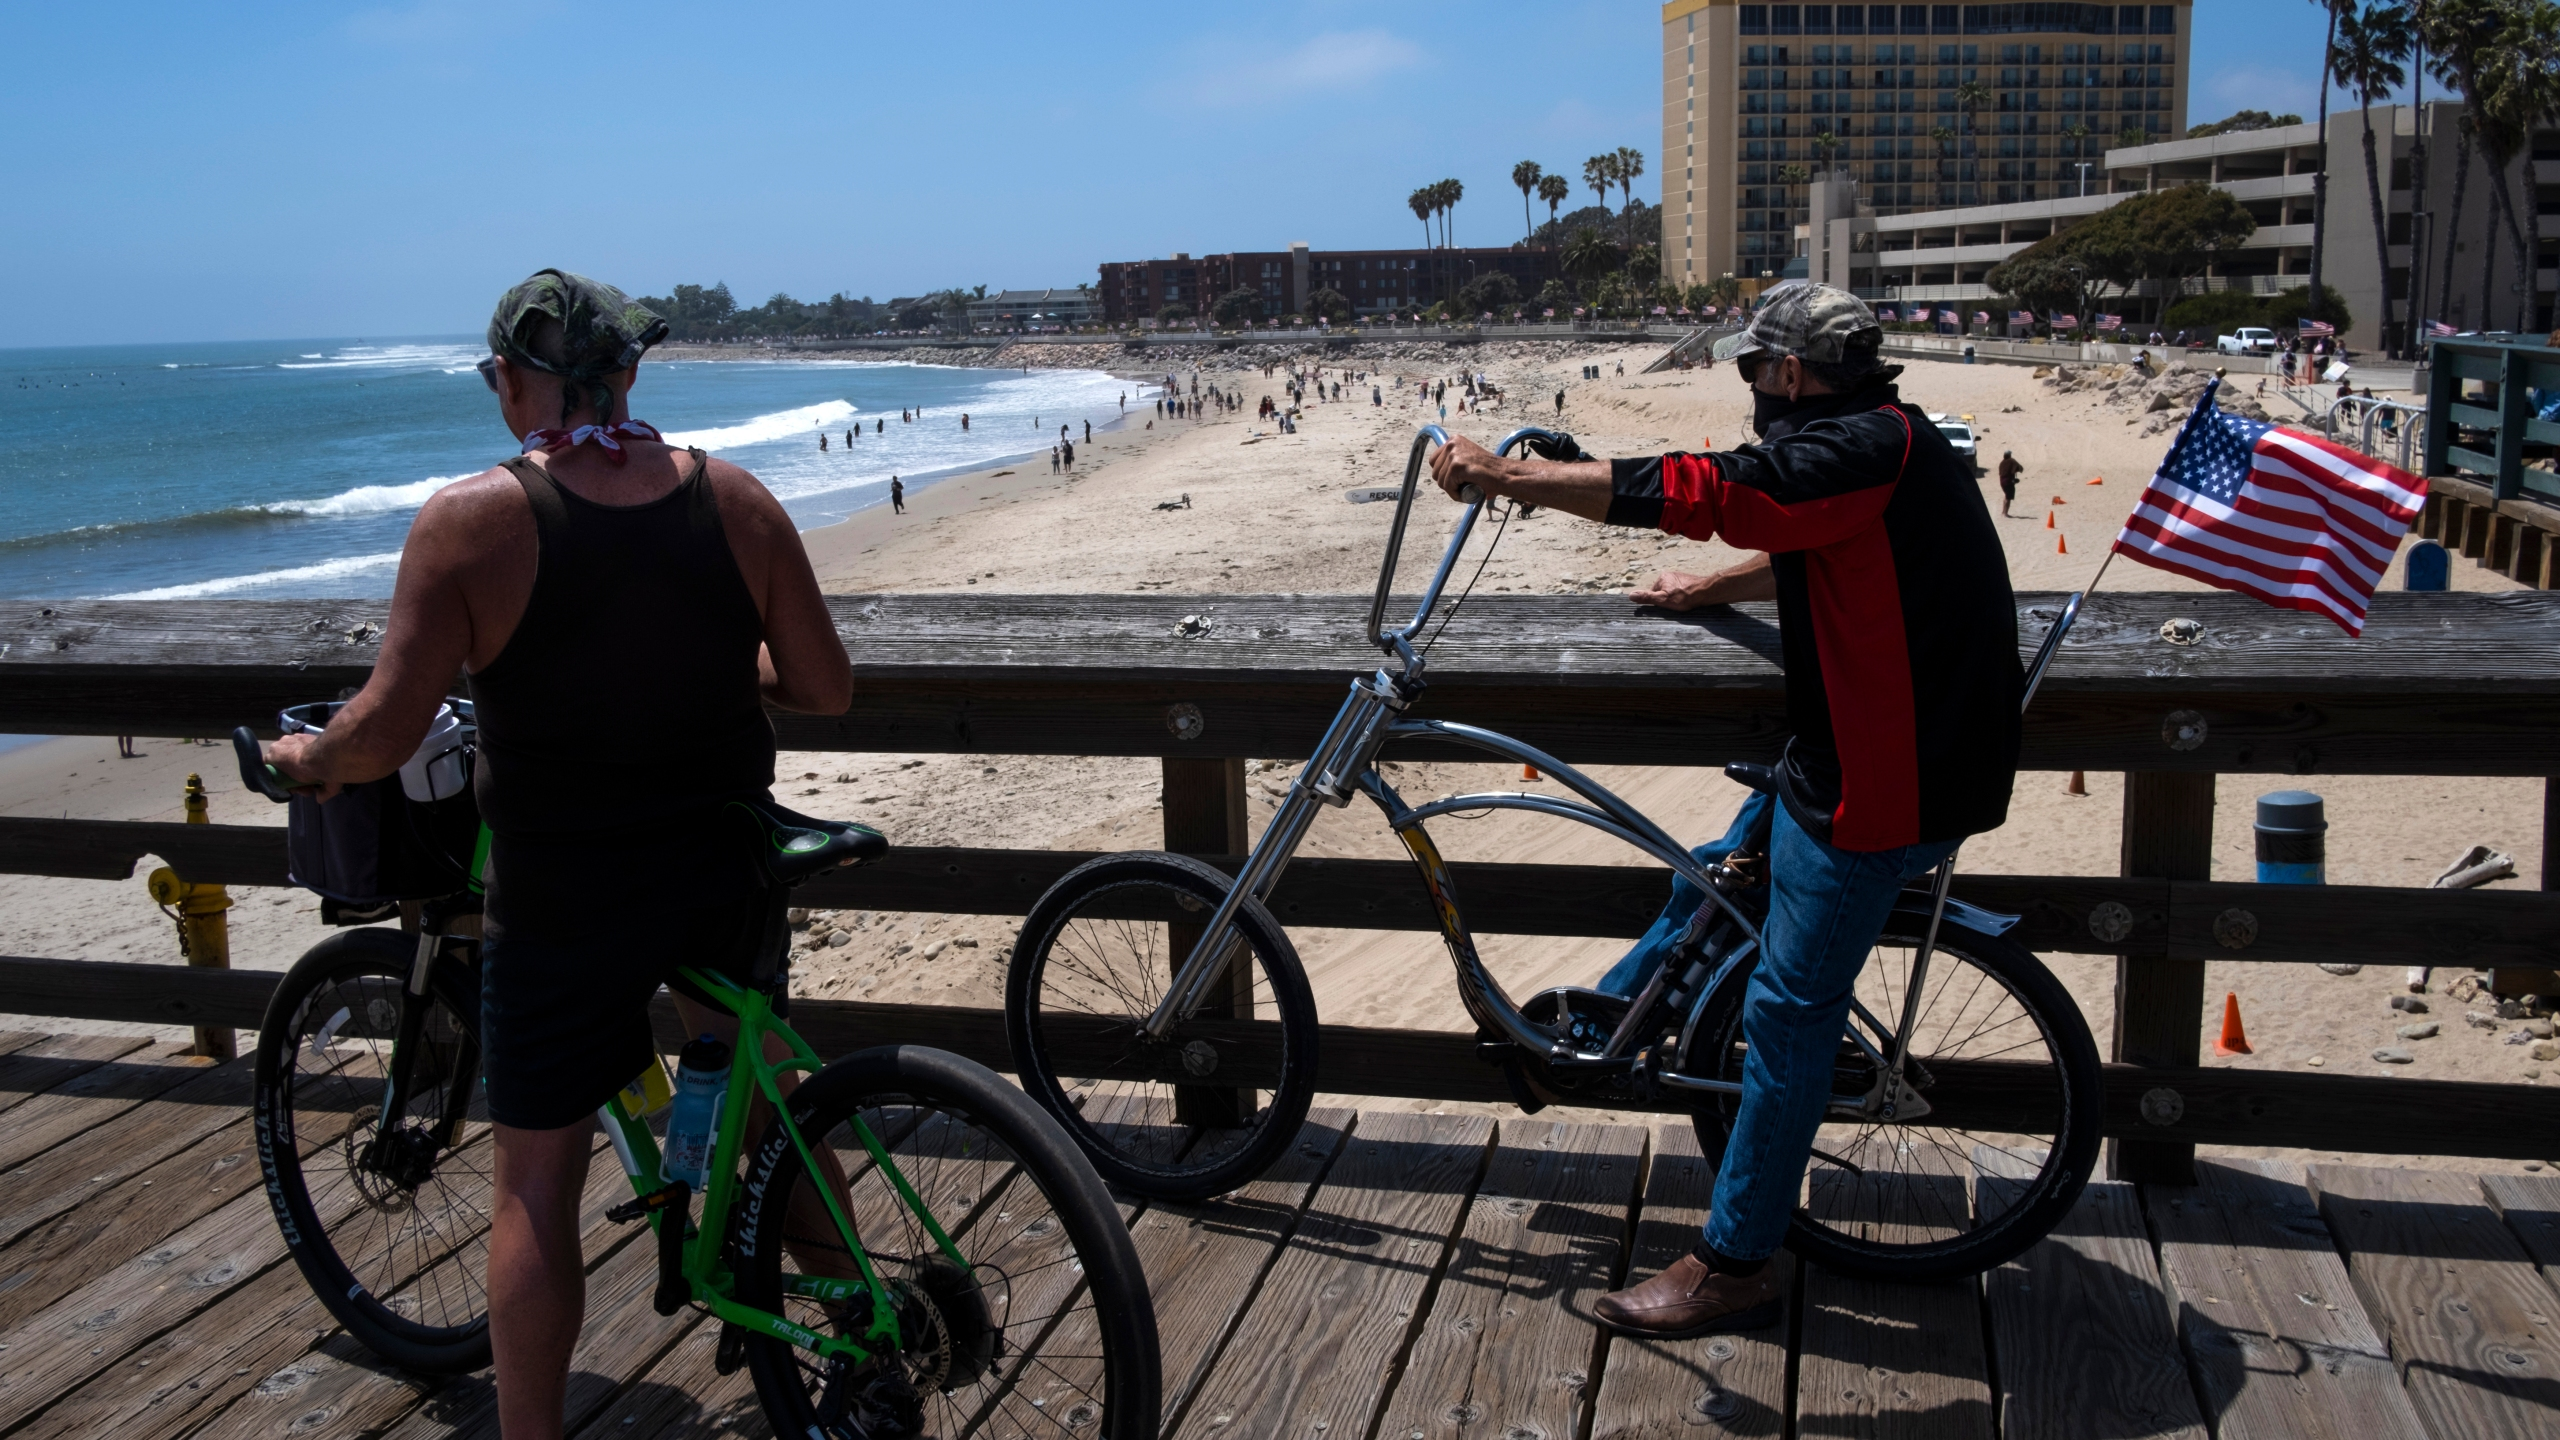 People enjoy the less restricted beachfront in Ventura on May 24, 2020. (Brent Stirton/Getty Images)